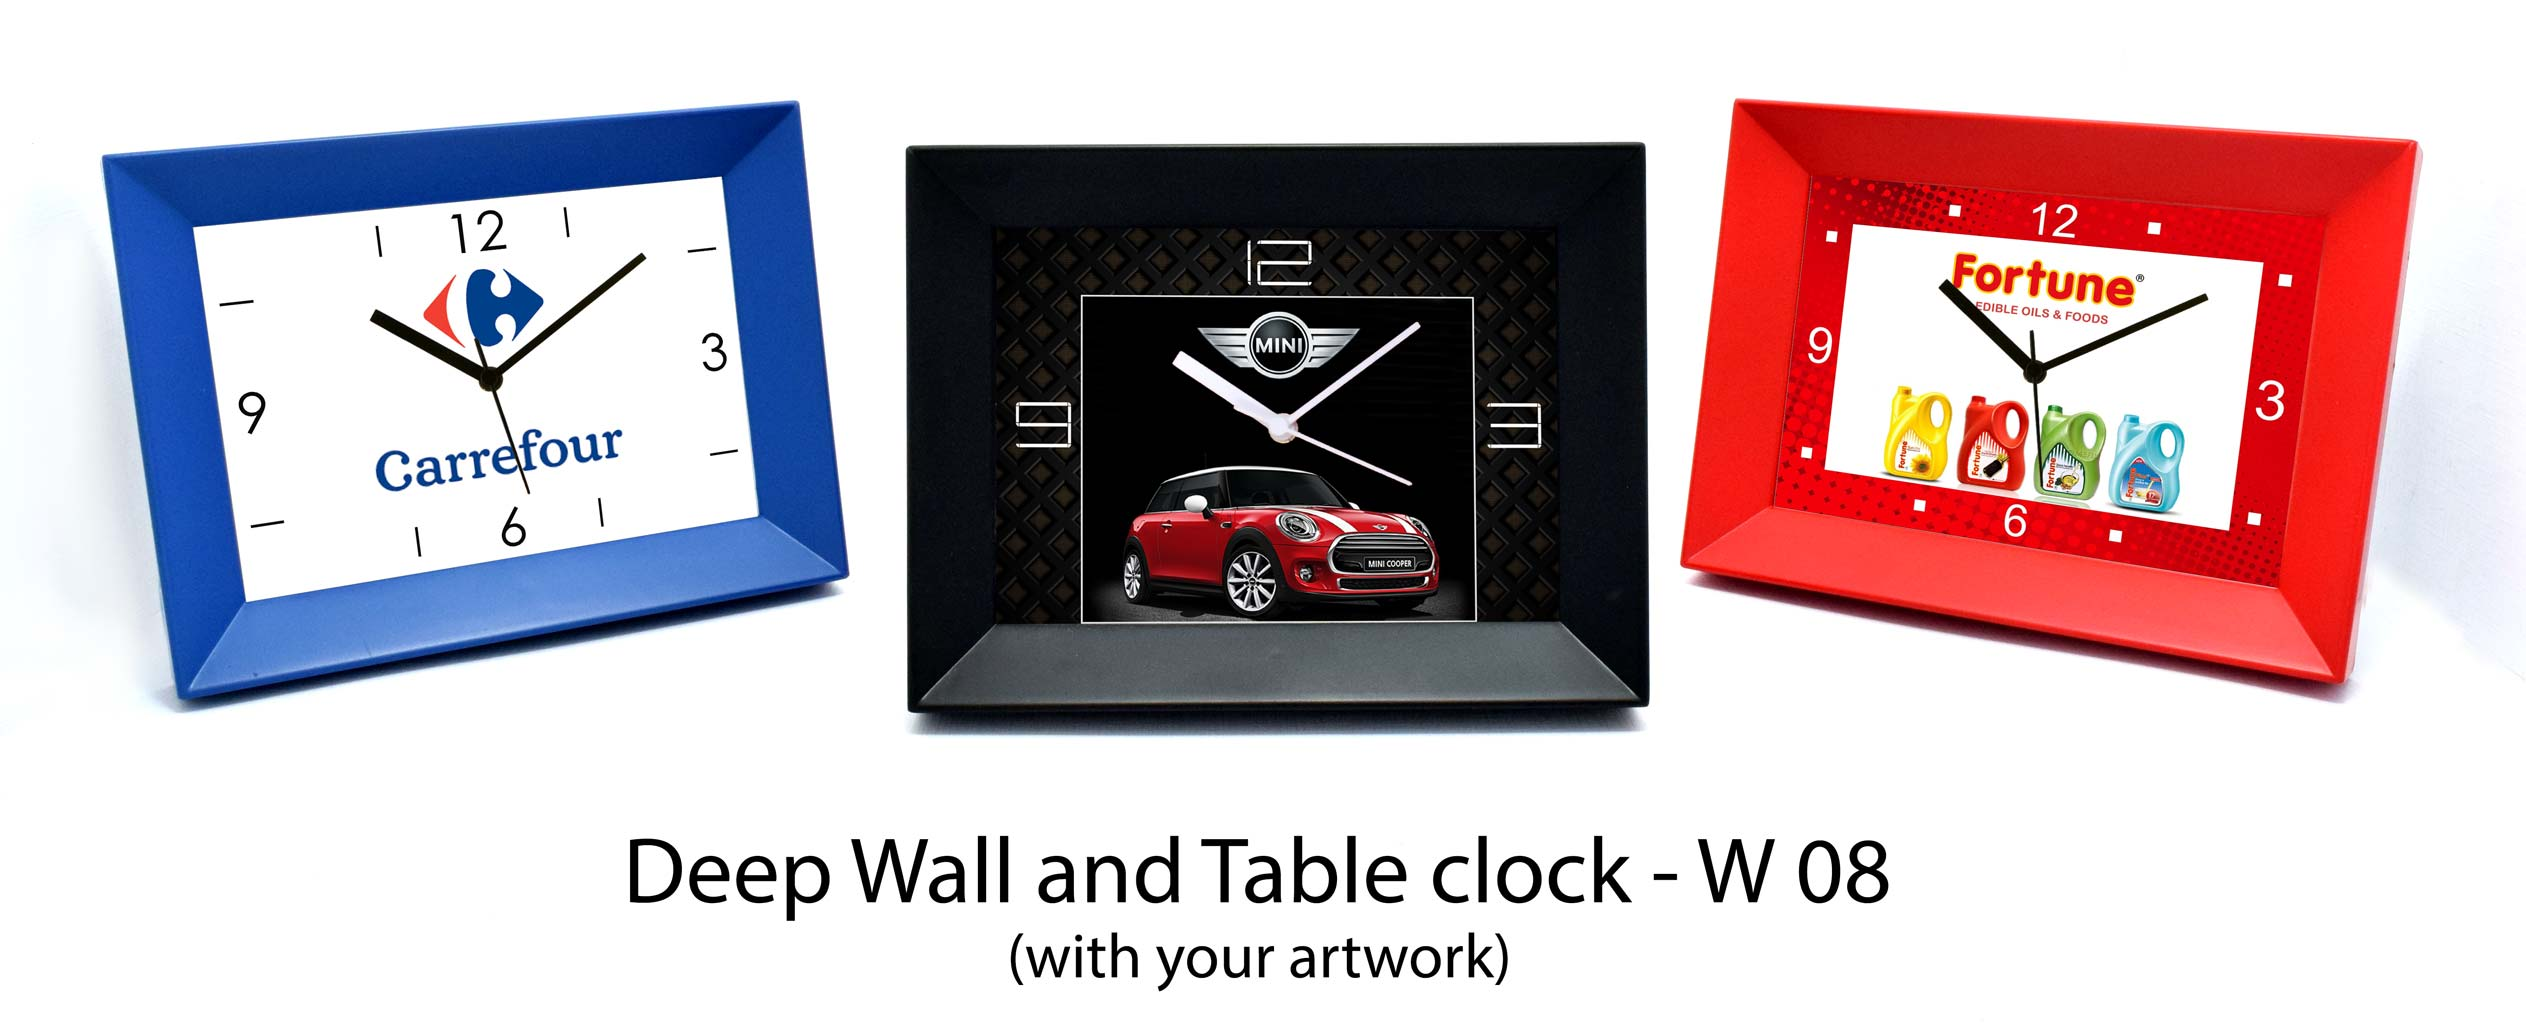 W08 - Deep wall clock